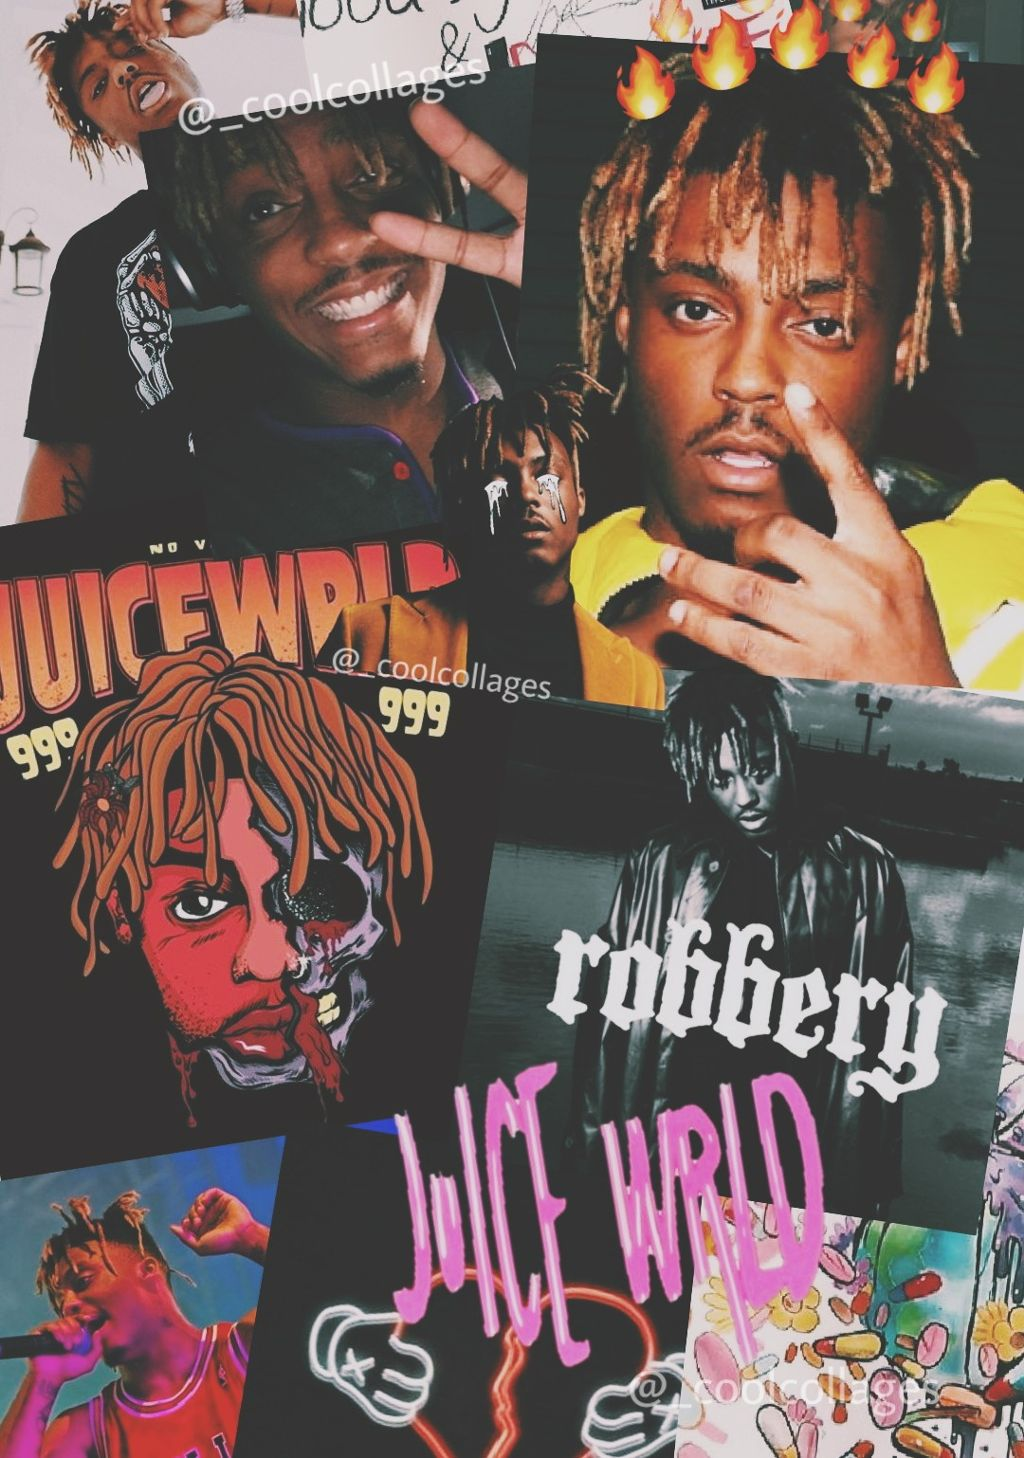 freetoedit Juice Wrld wallpaper I made for an edit I